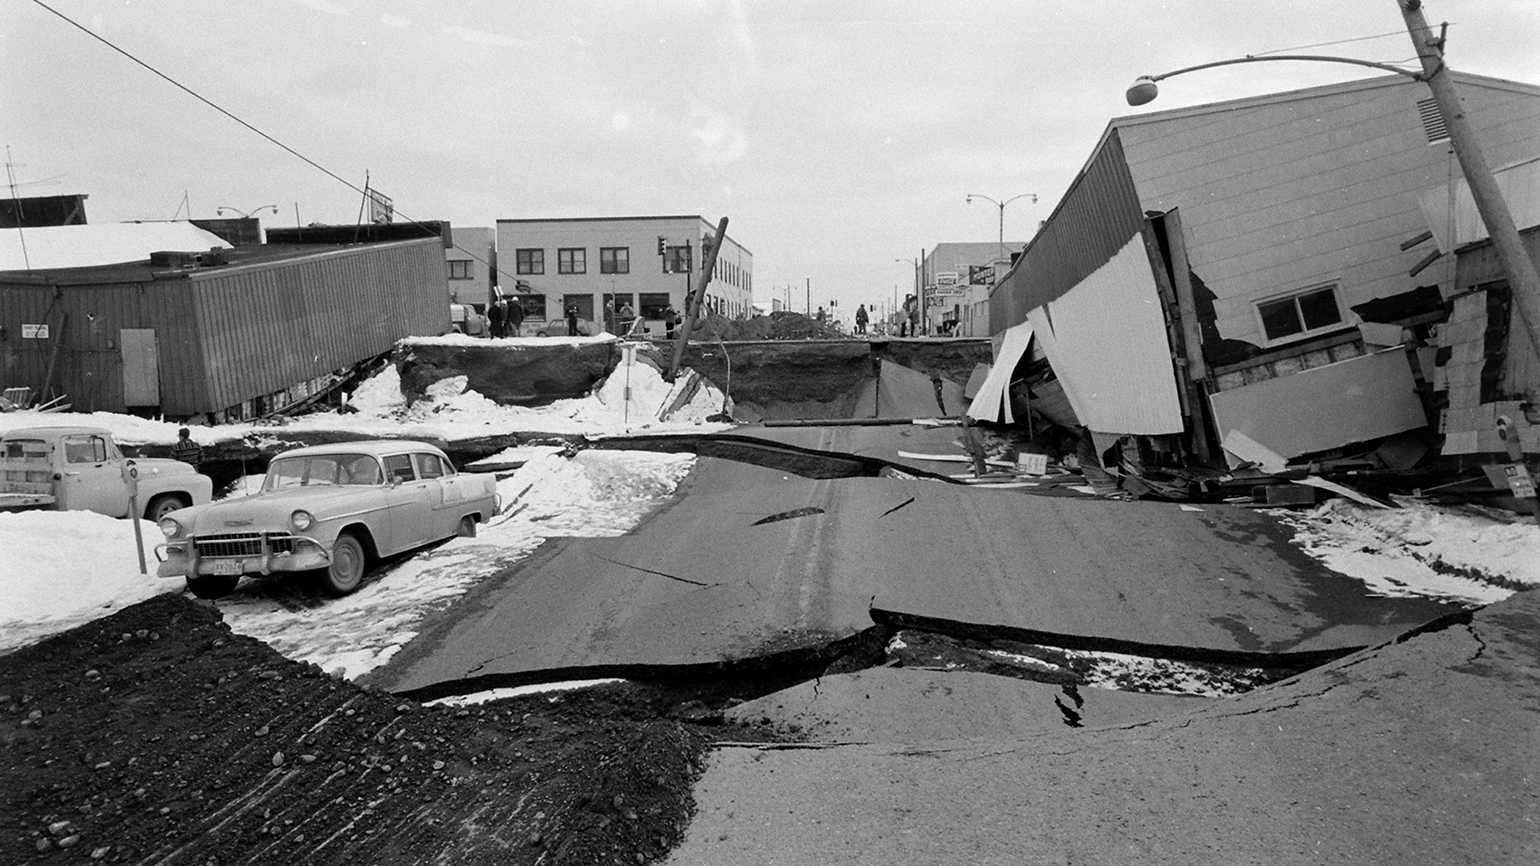 The aftermath of the 1964 Alaska earthquake